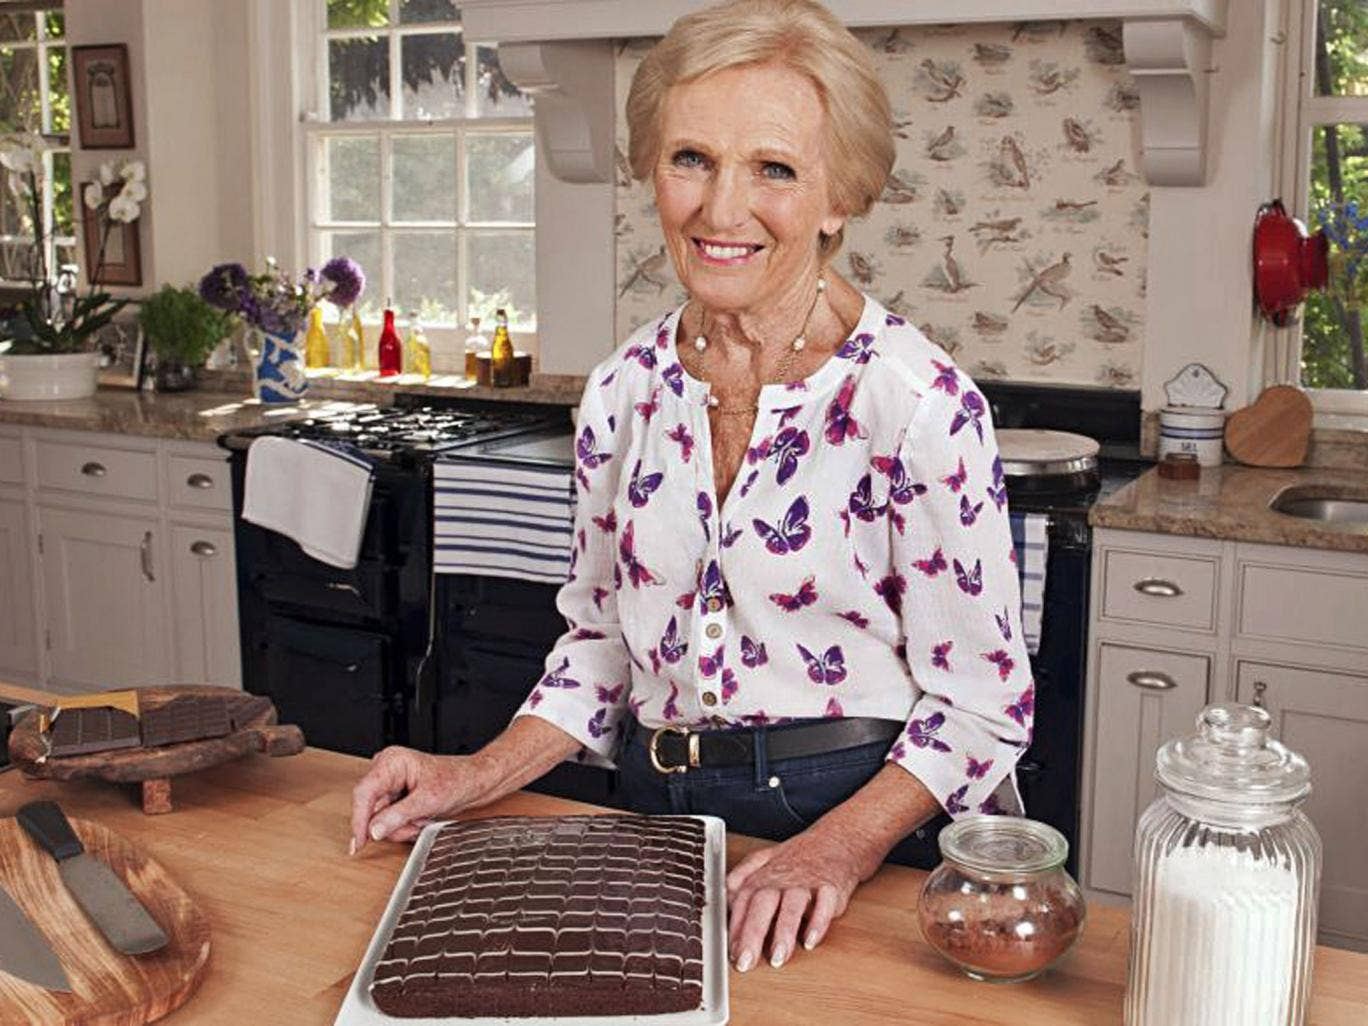 A piece of cake: 'Mary Berry Cooks'